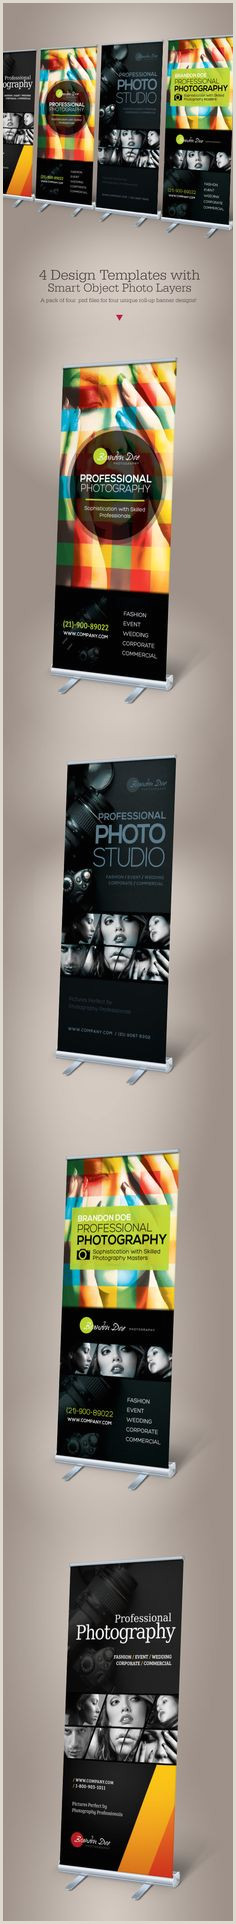 Custom Roll Up Banners 100 Best Pull Up Roller Banners Images